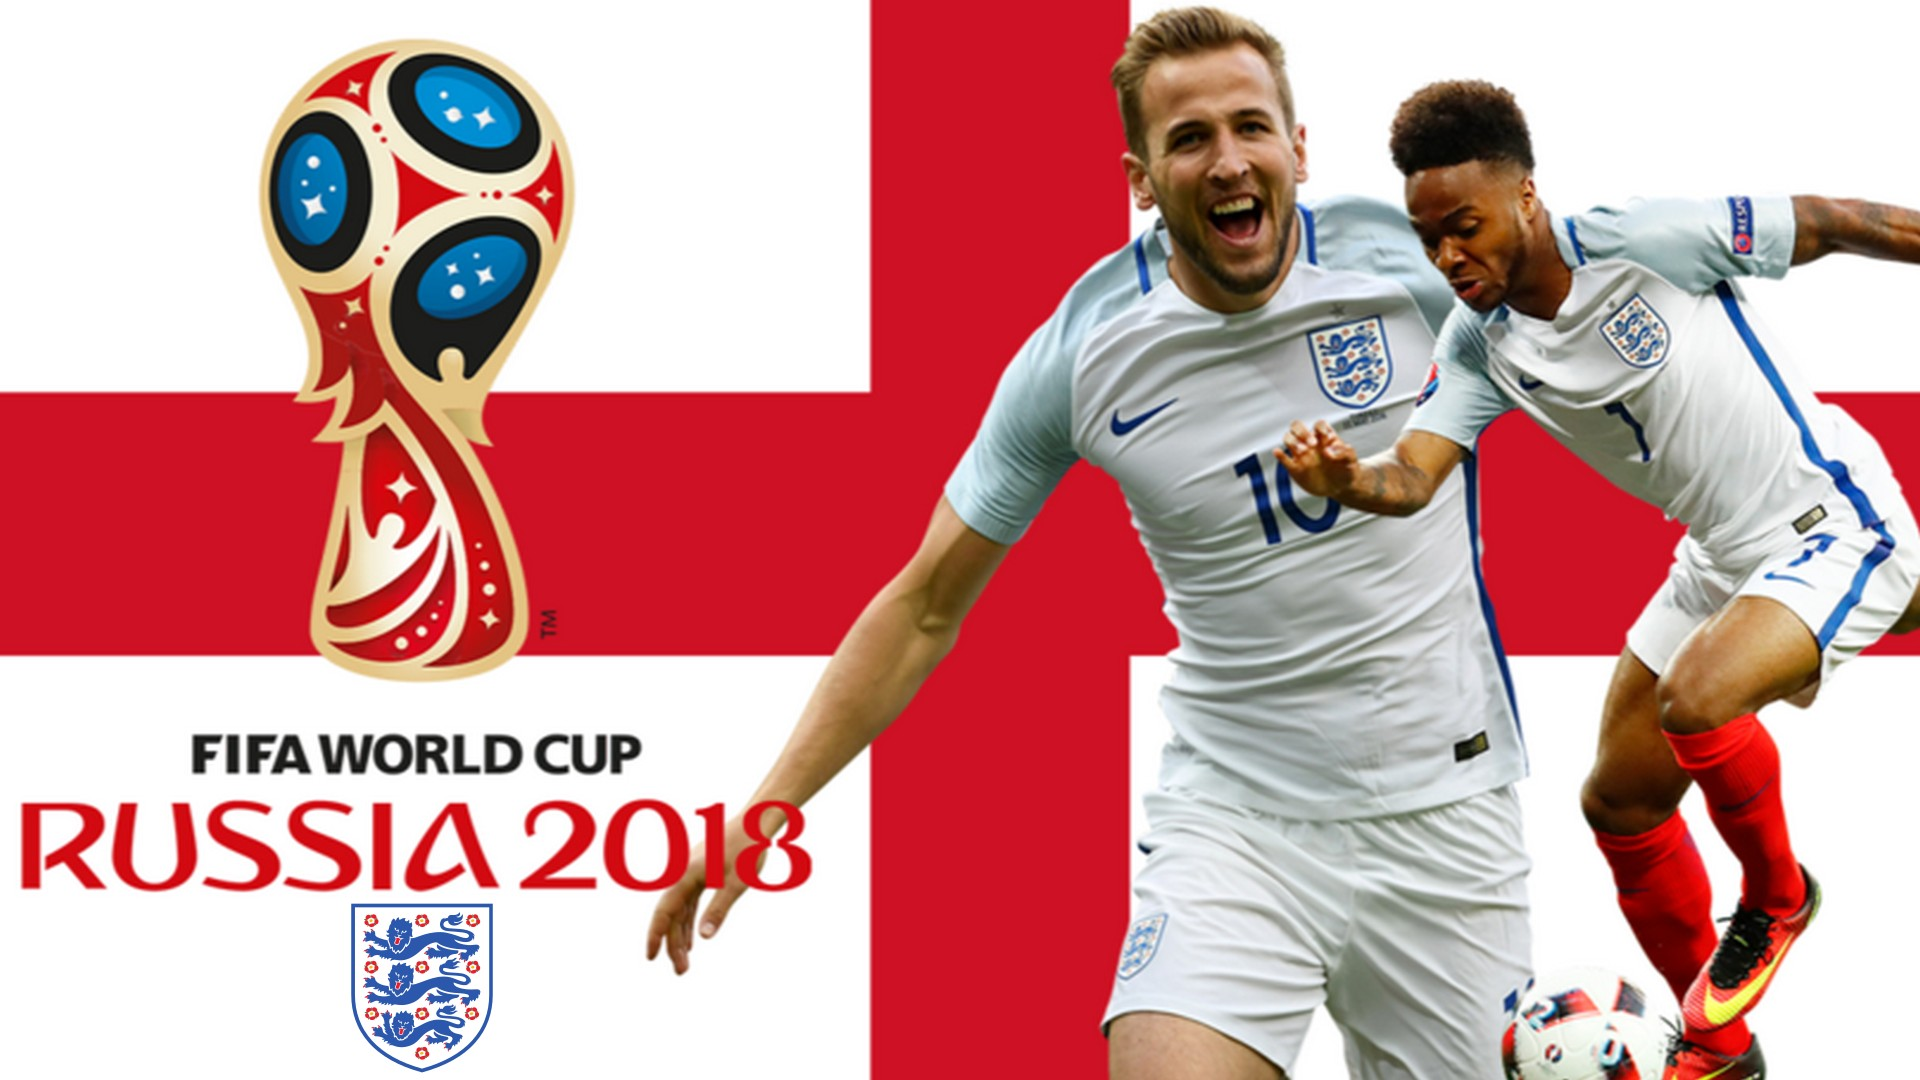 Free Download 2018 England World Cup Wallpaper Hd 2019 Football